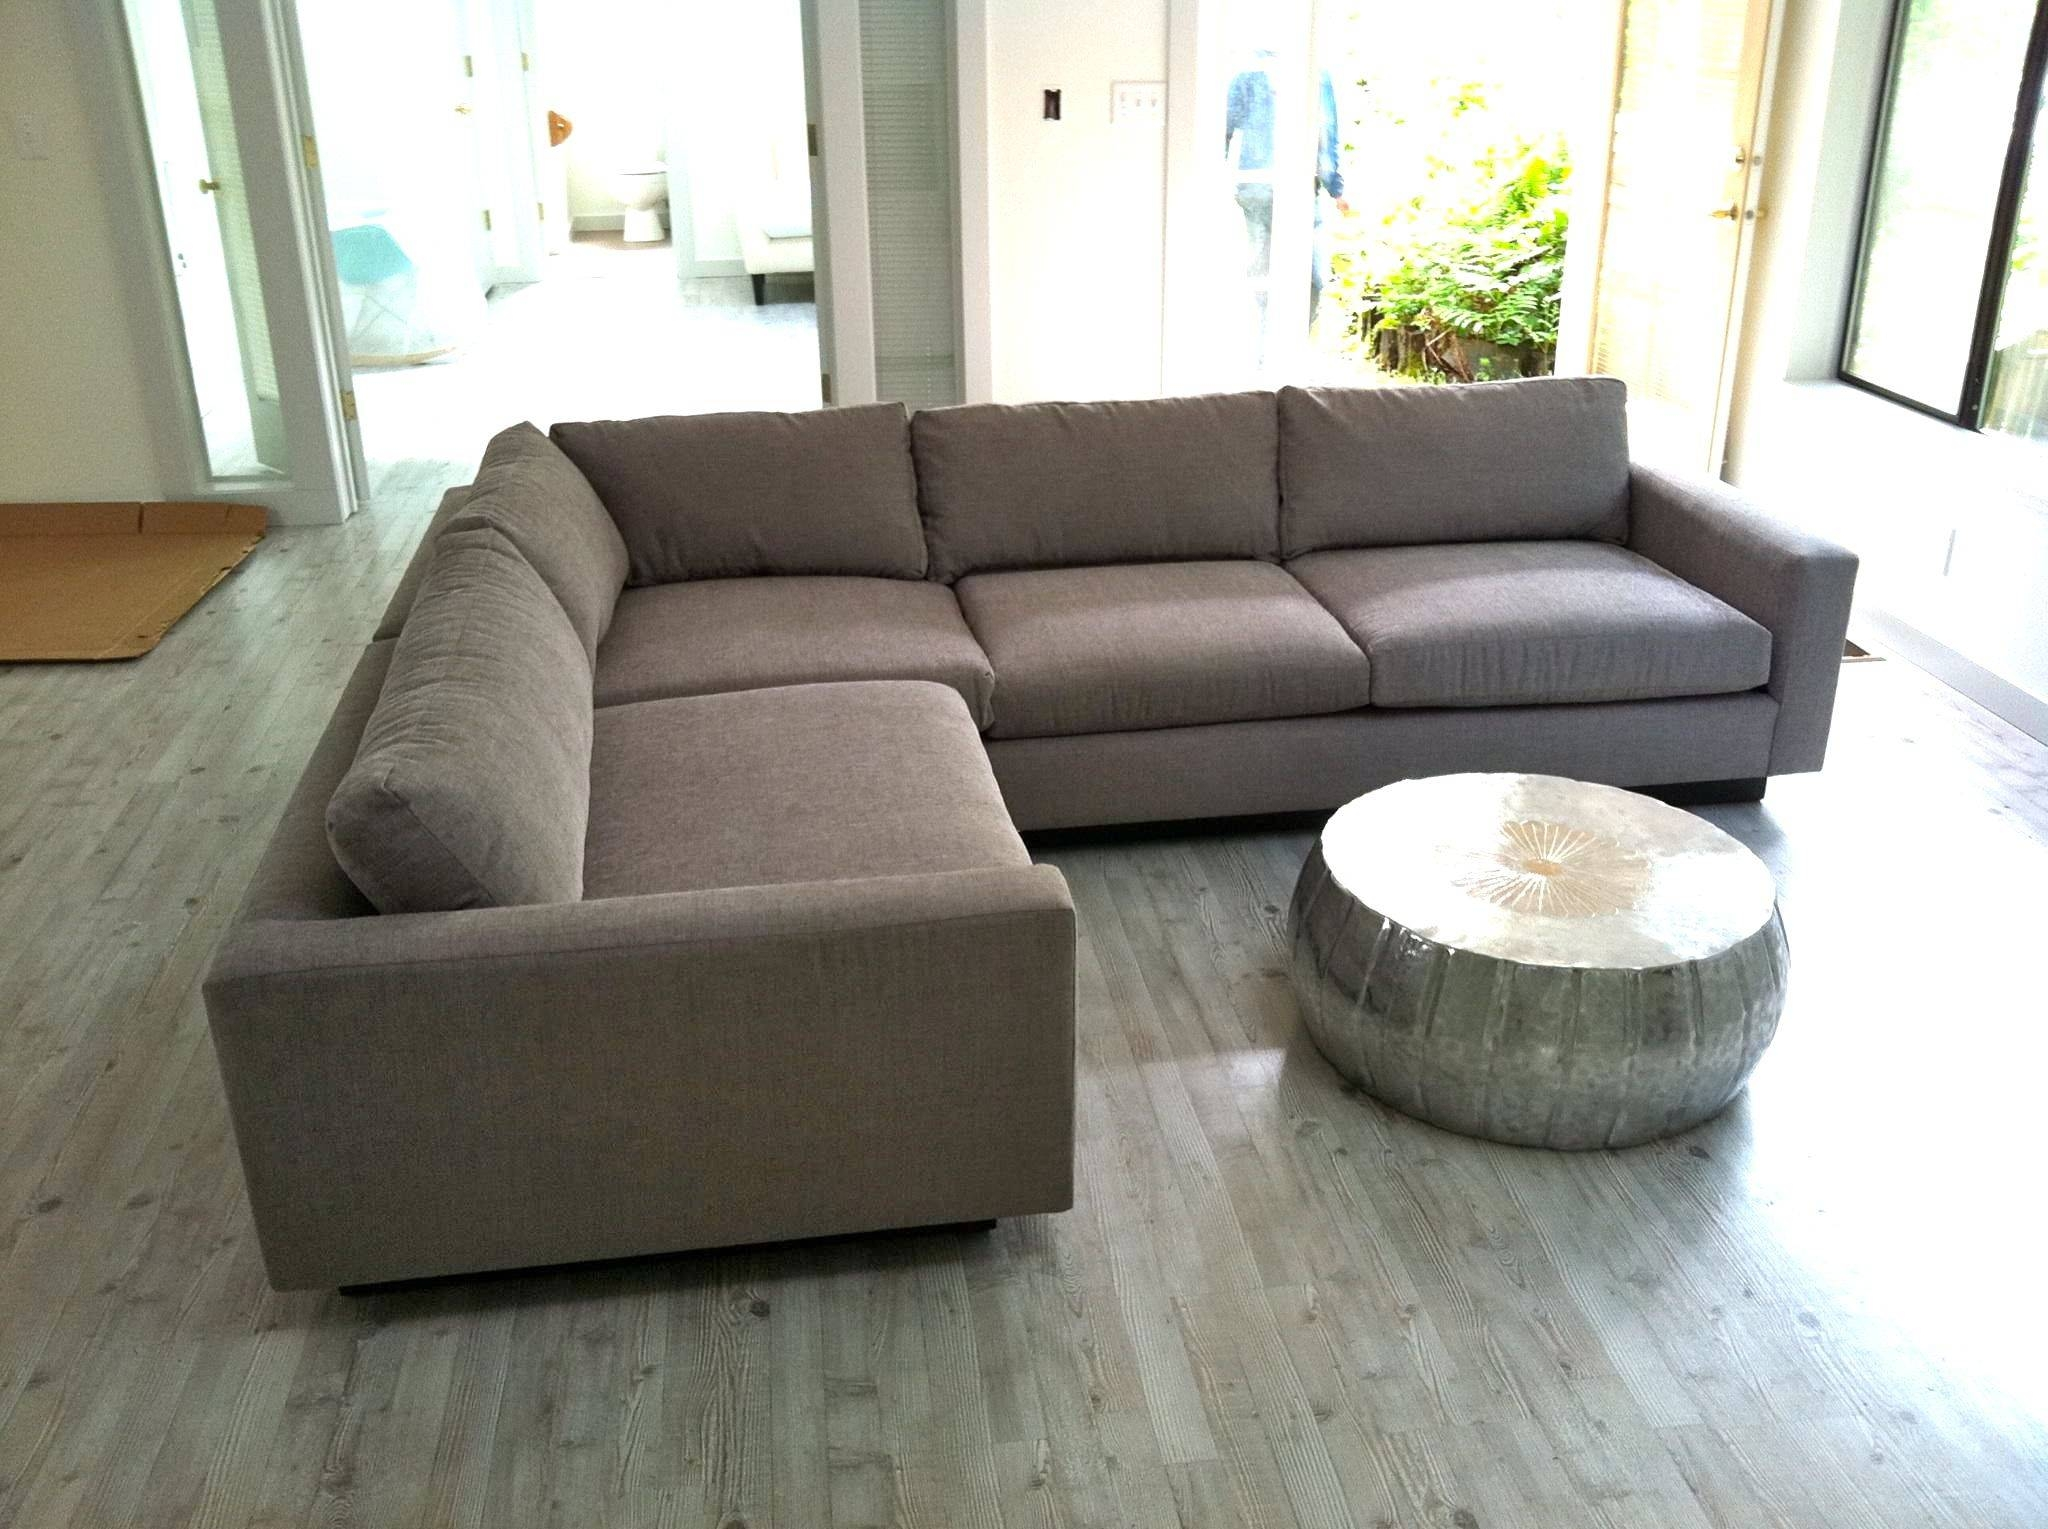 leg arm modern bentley apartment sofas sofa size apt and track products king with large hickory barnett leather furniture